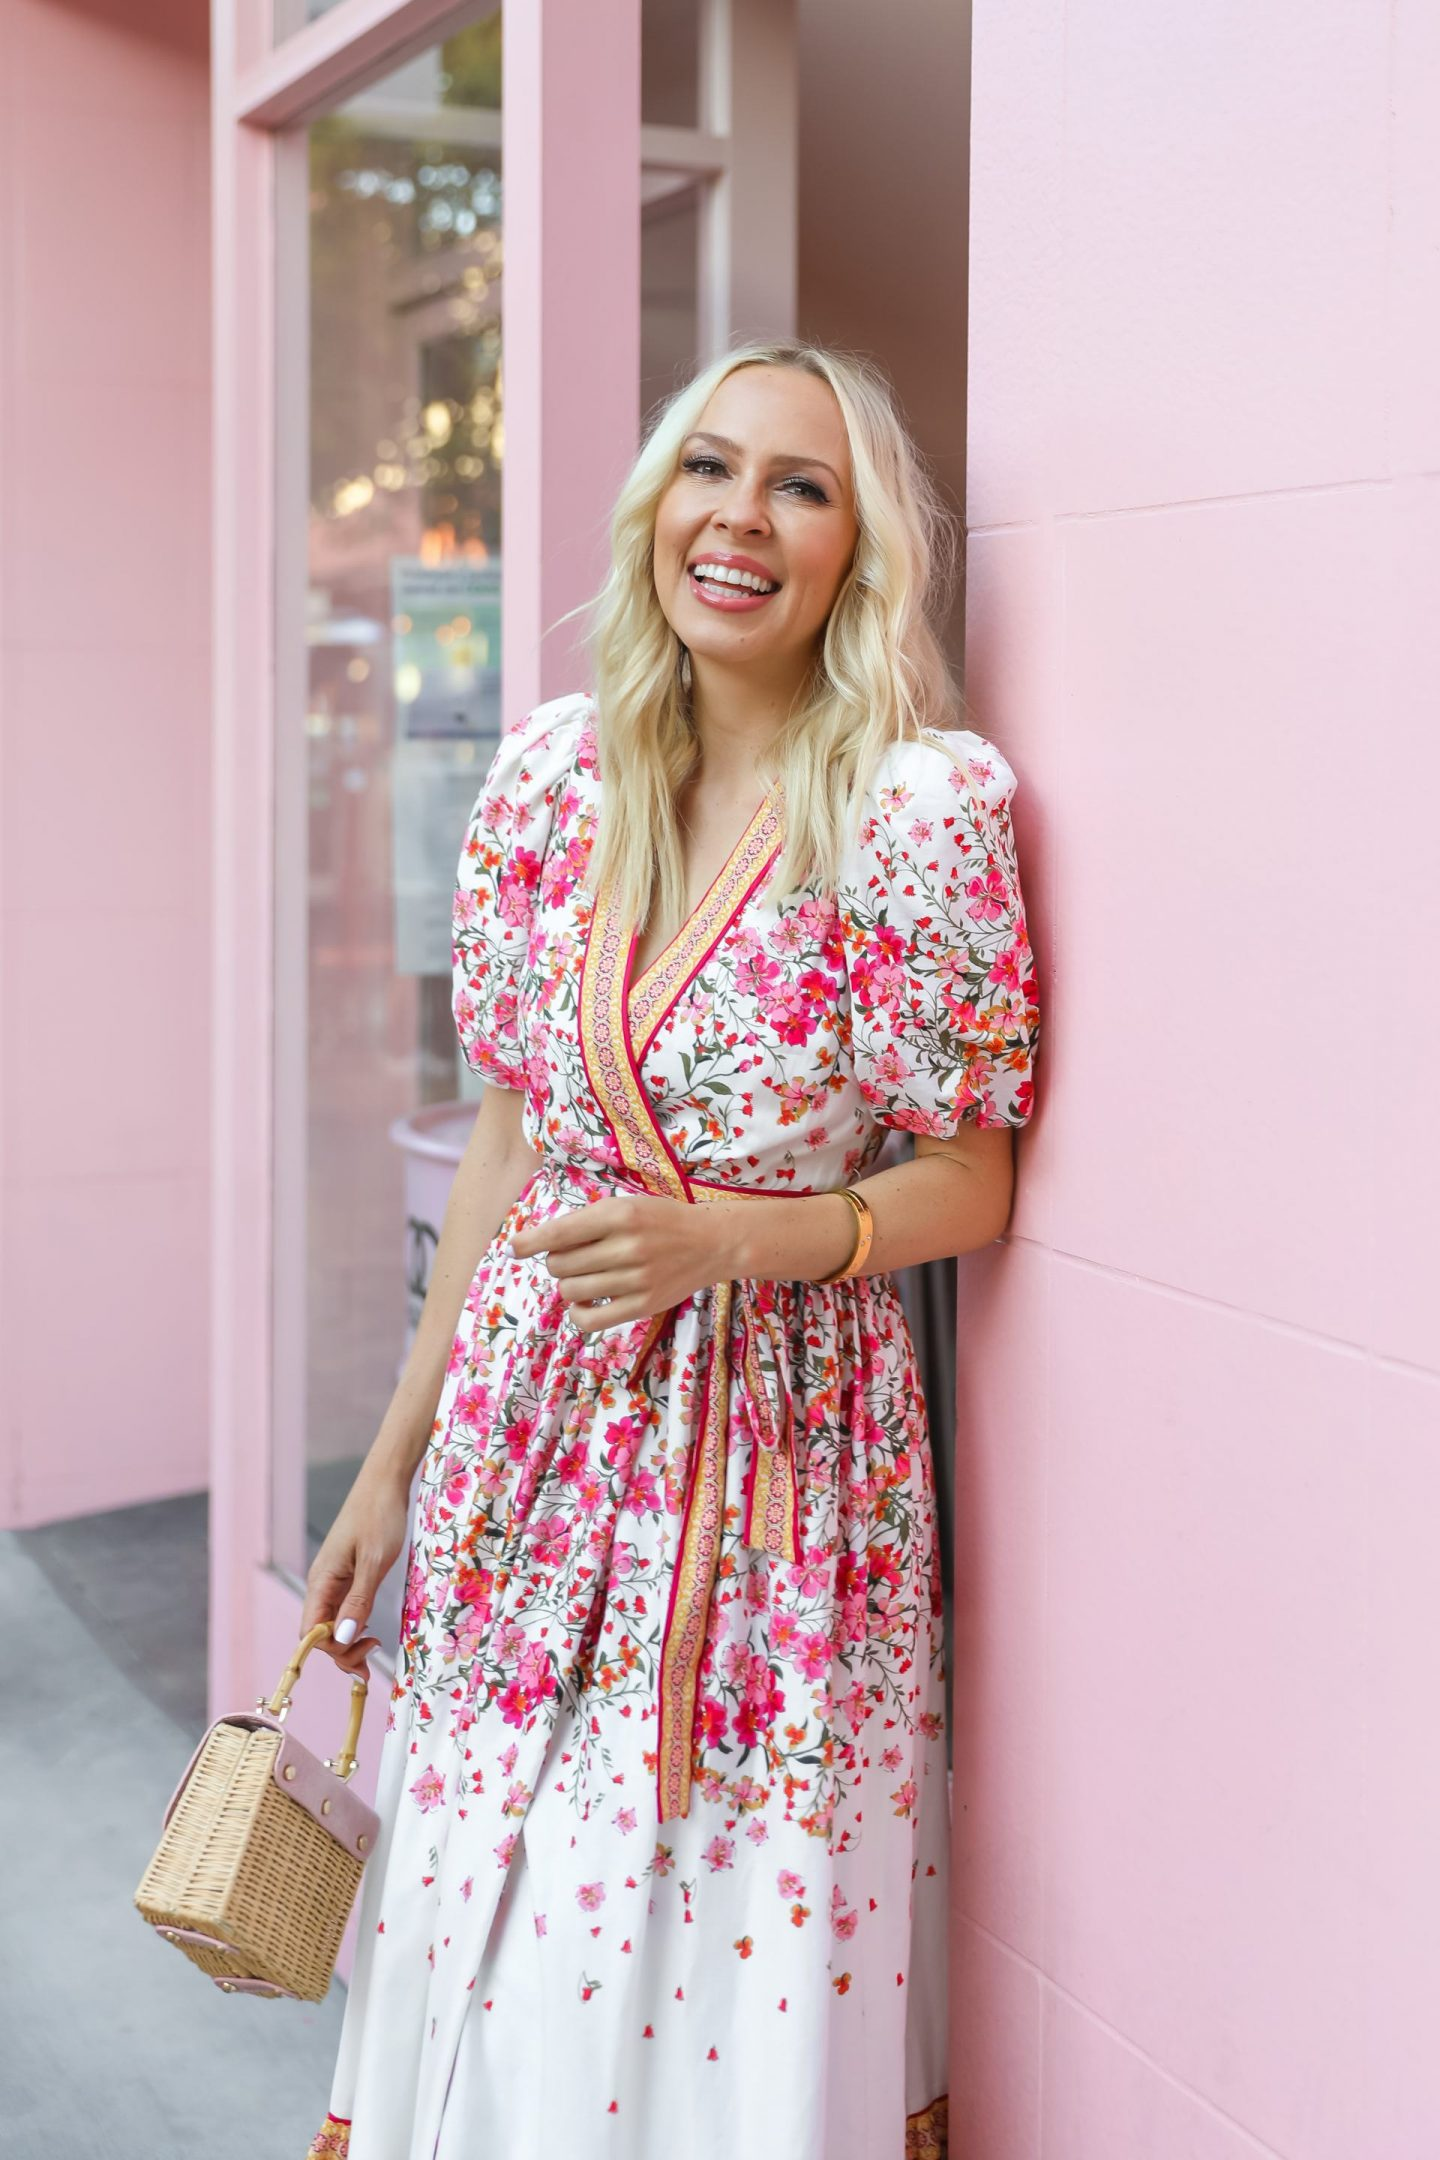 Summer floral maxi dresses from Dillard's, Antonio Melani by pink wall in San Francisco, by Lombard & Fifth.